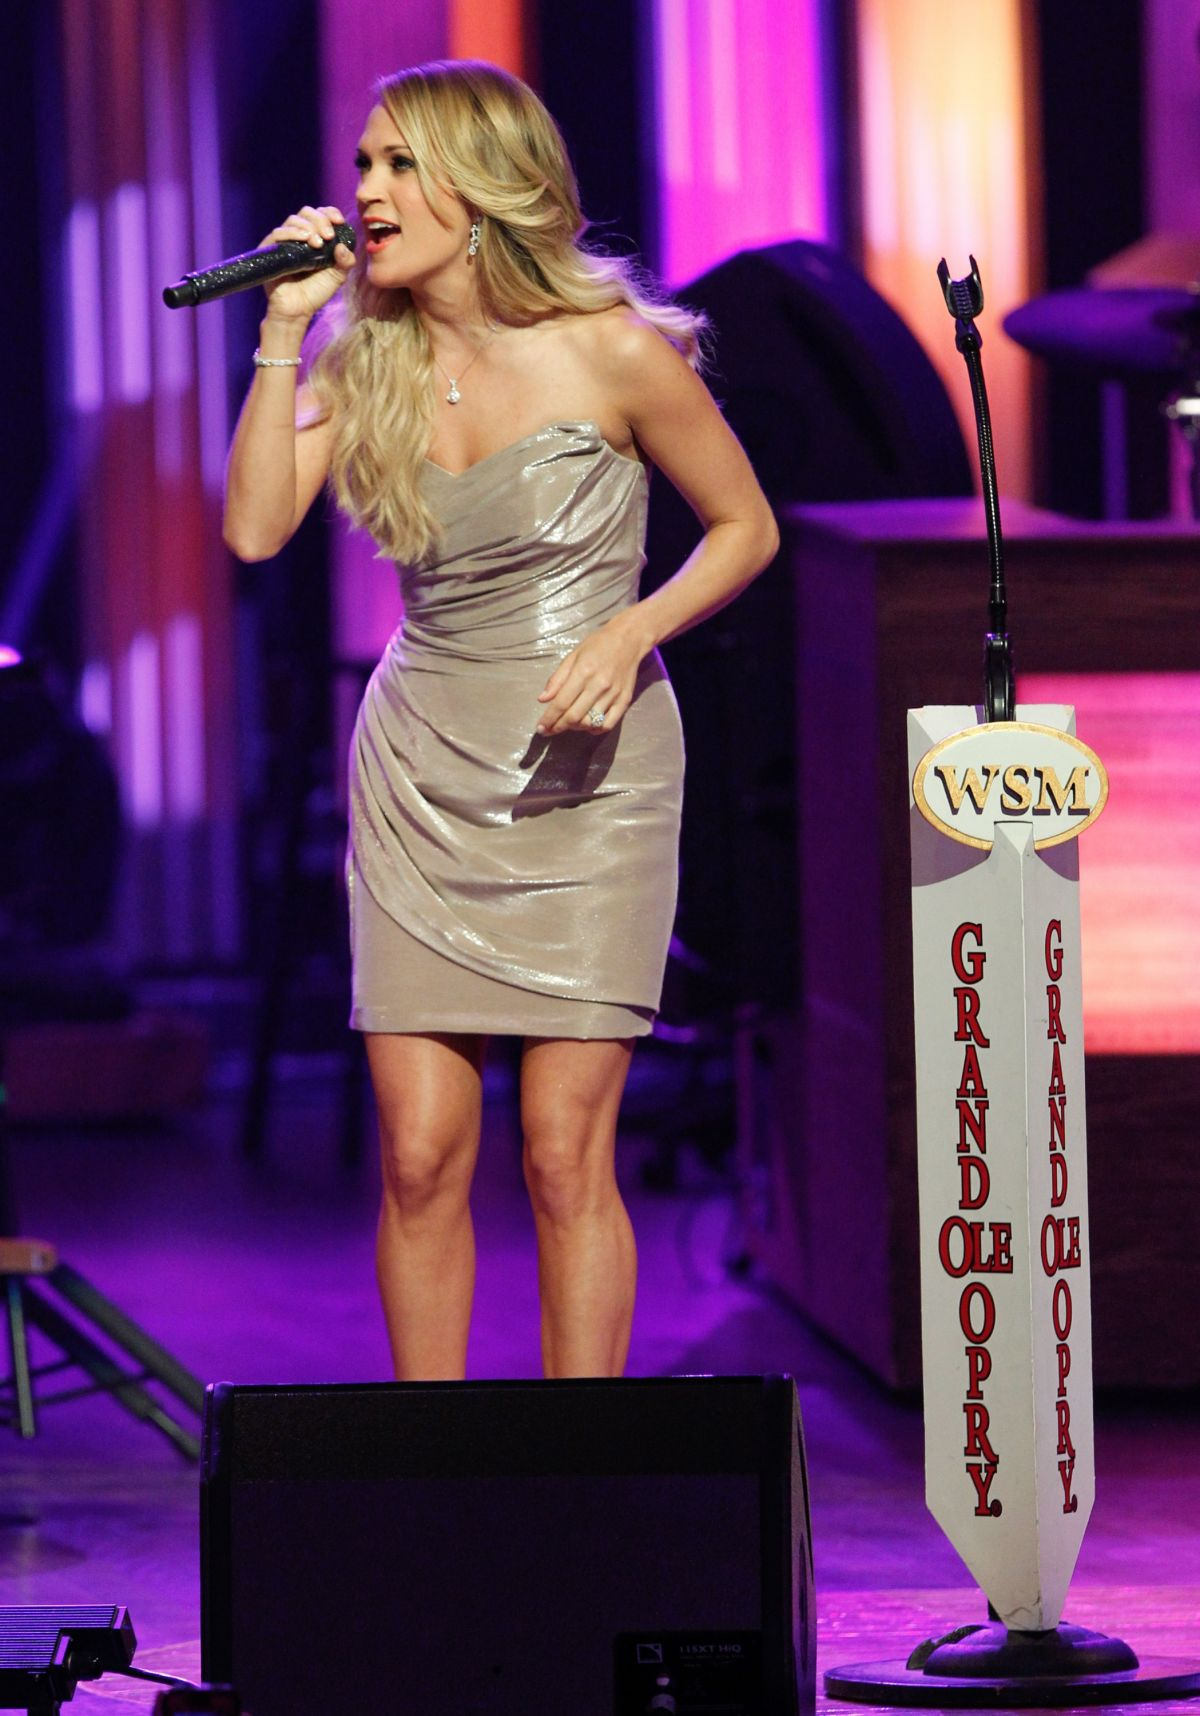 CARRIE UNDERWOOD at Grand Ole Opry Music Stage Concert in Nashville